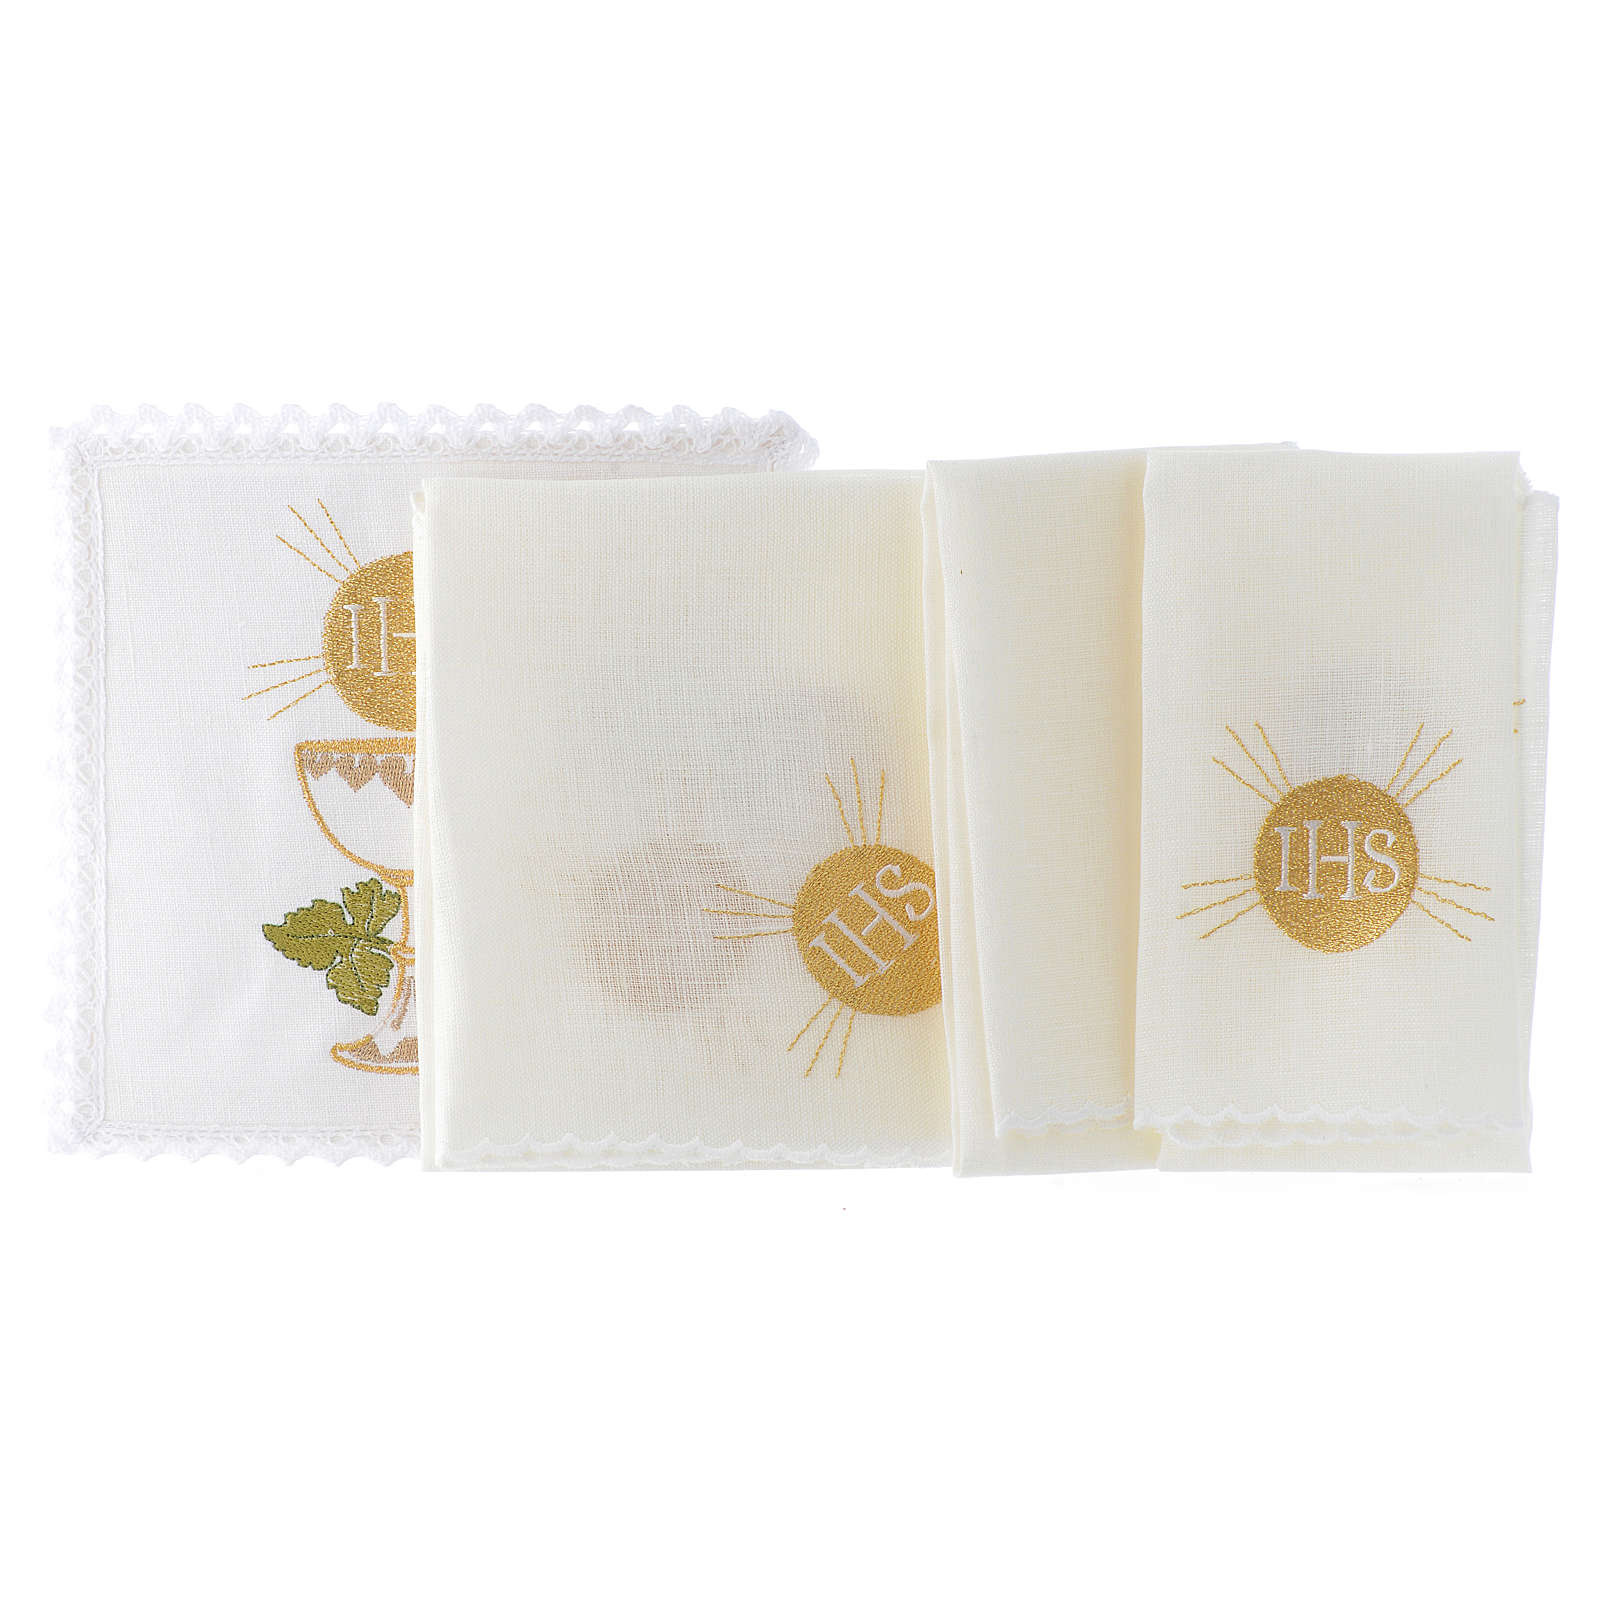 Altar cloth linen set 100% linen bread and wine chalice 4